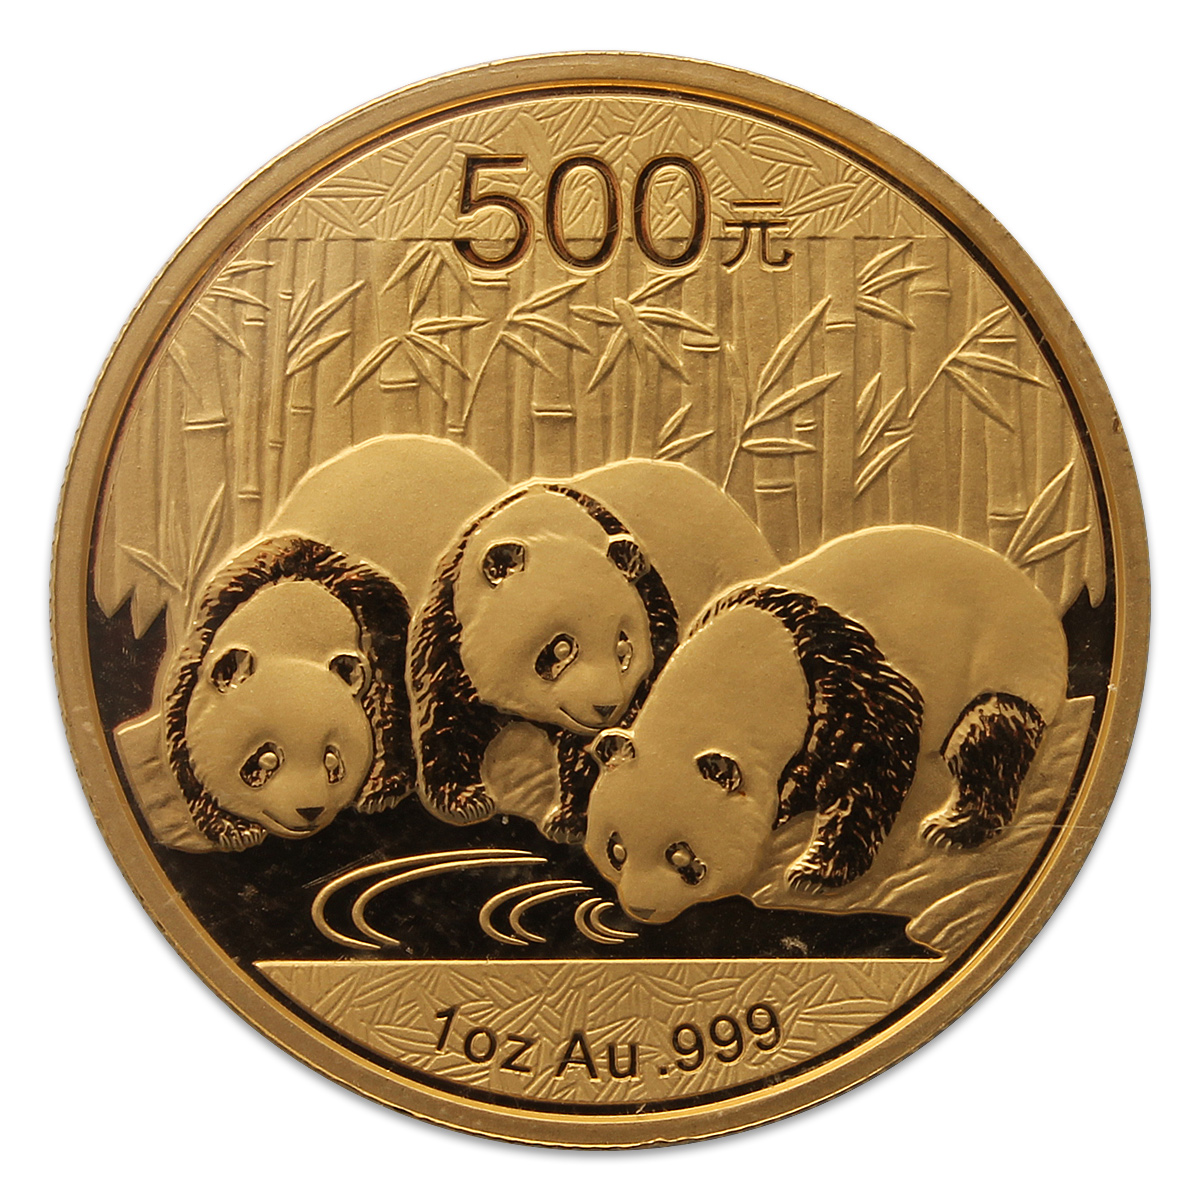 2013 Chinese Panda 1oz Gold Coin Buy Chinese Panda Coins